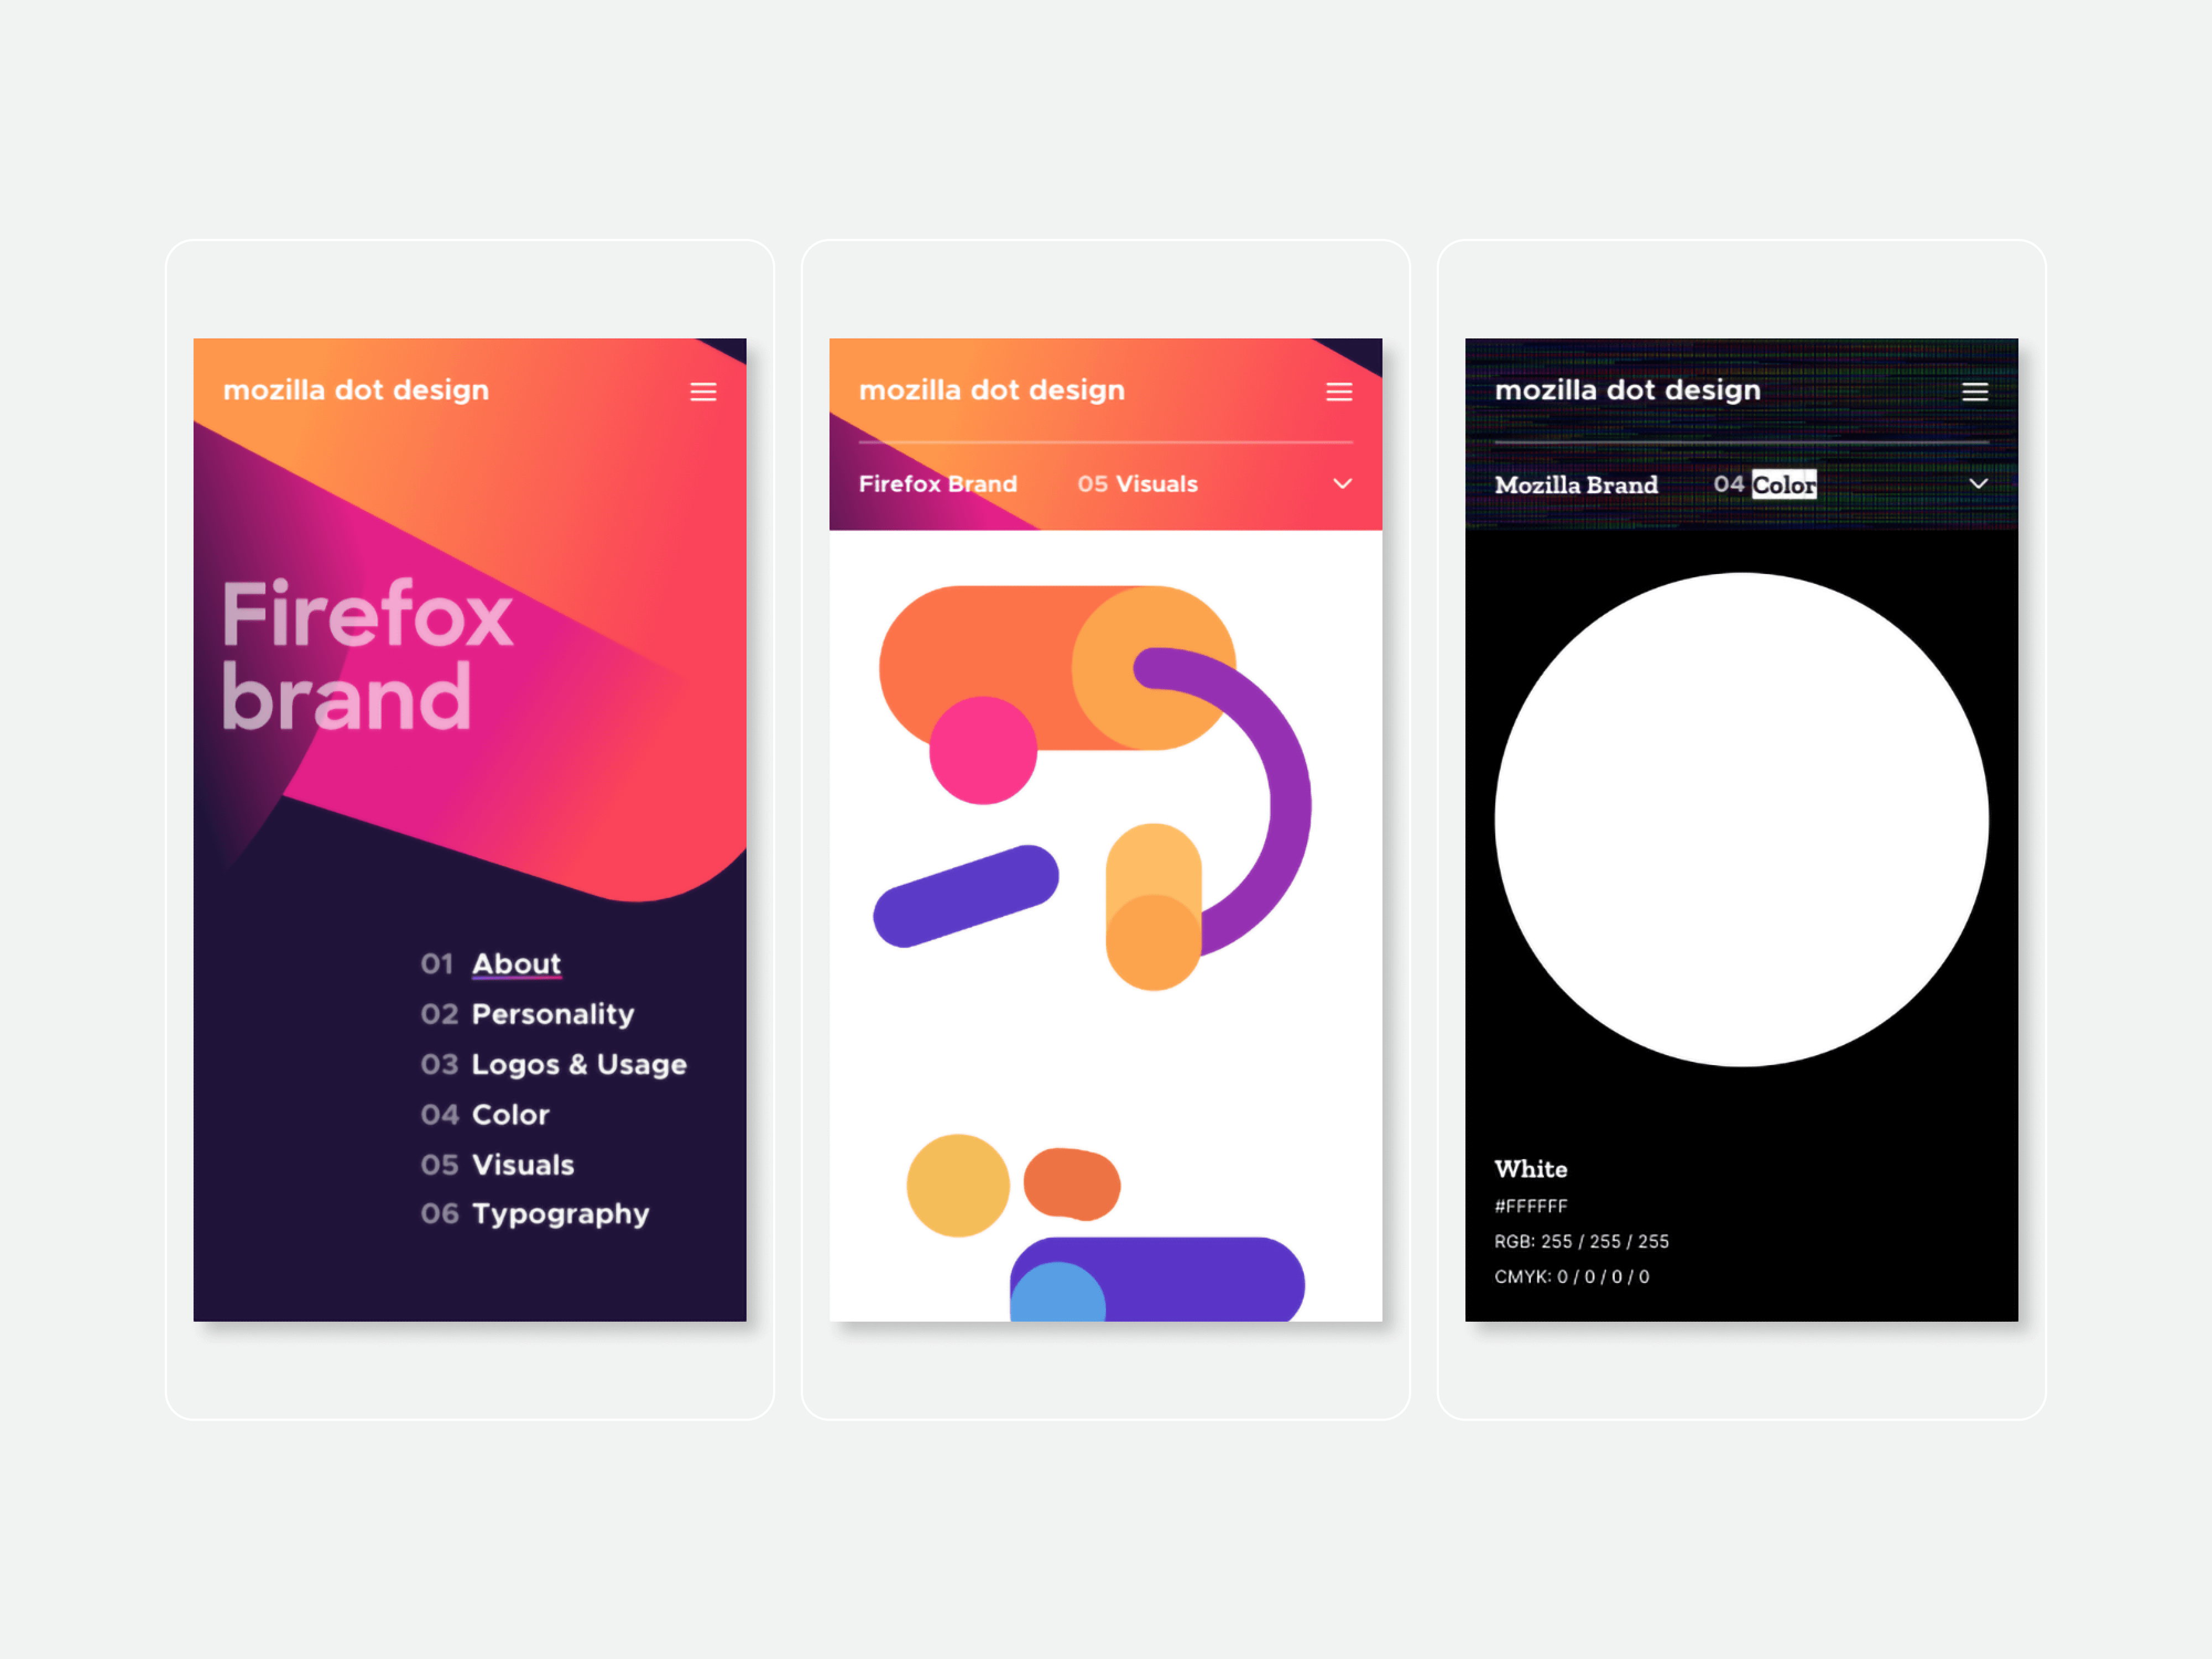 Mobile screens of the Mozilla dot design website